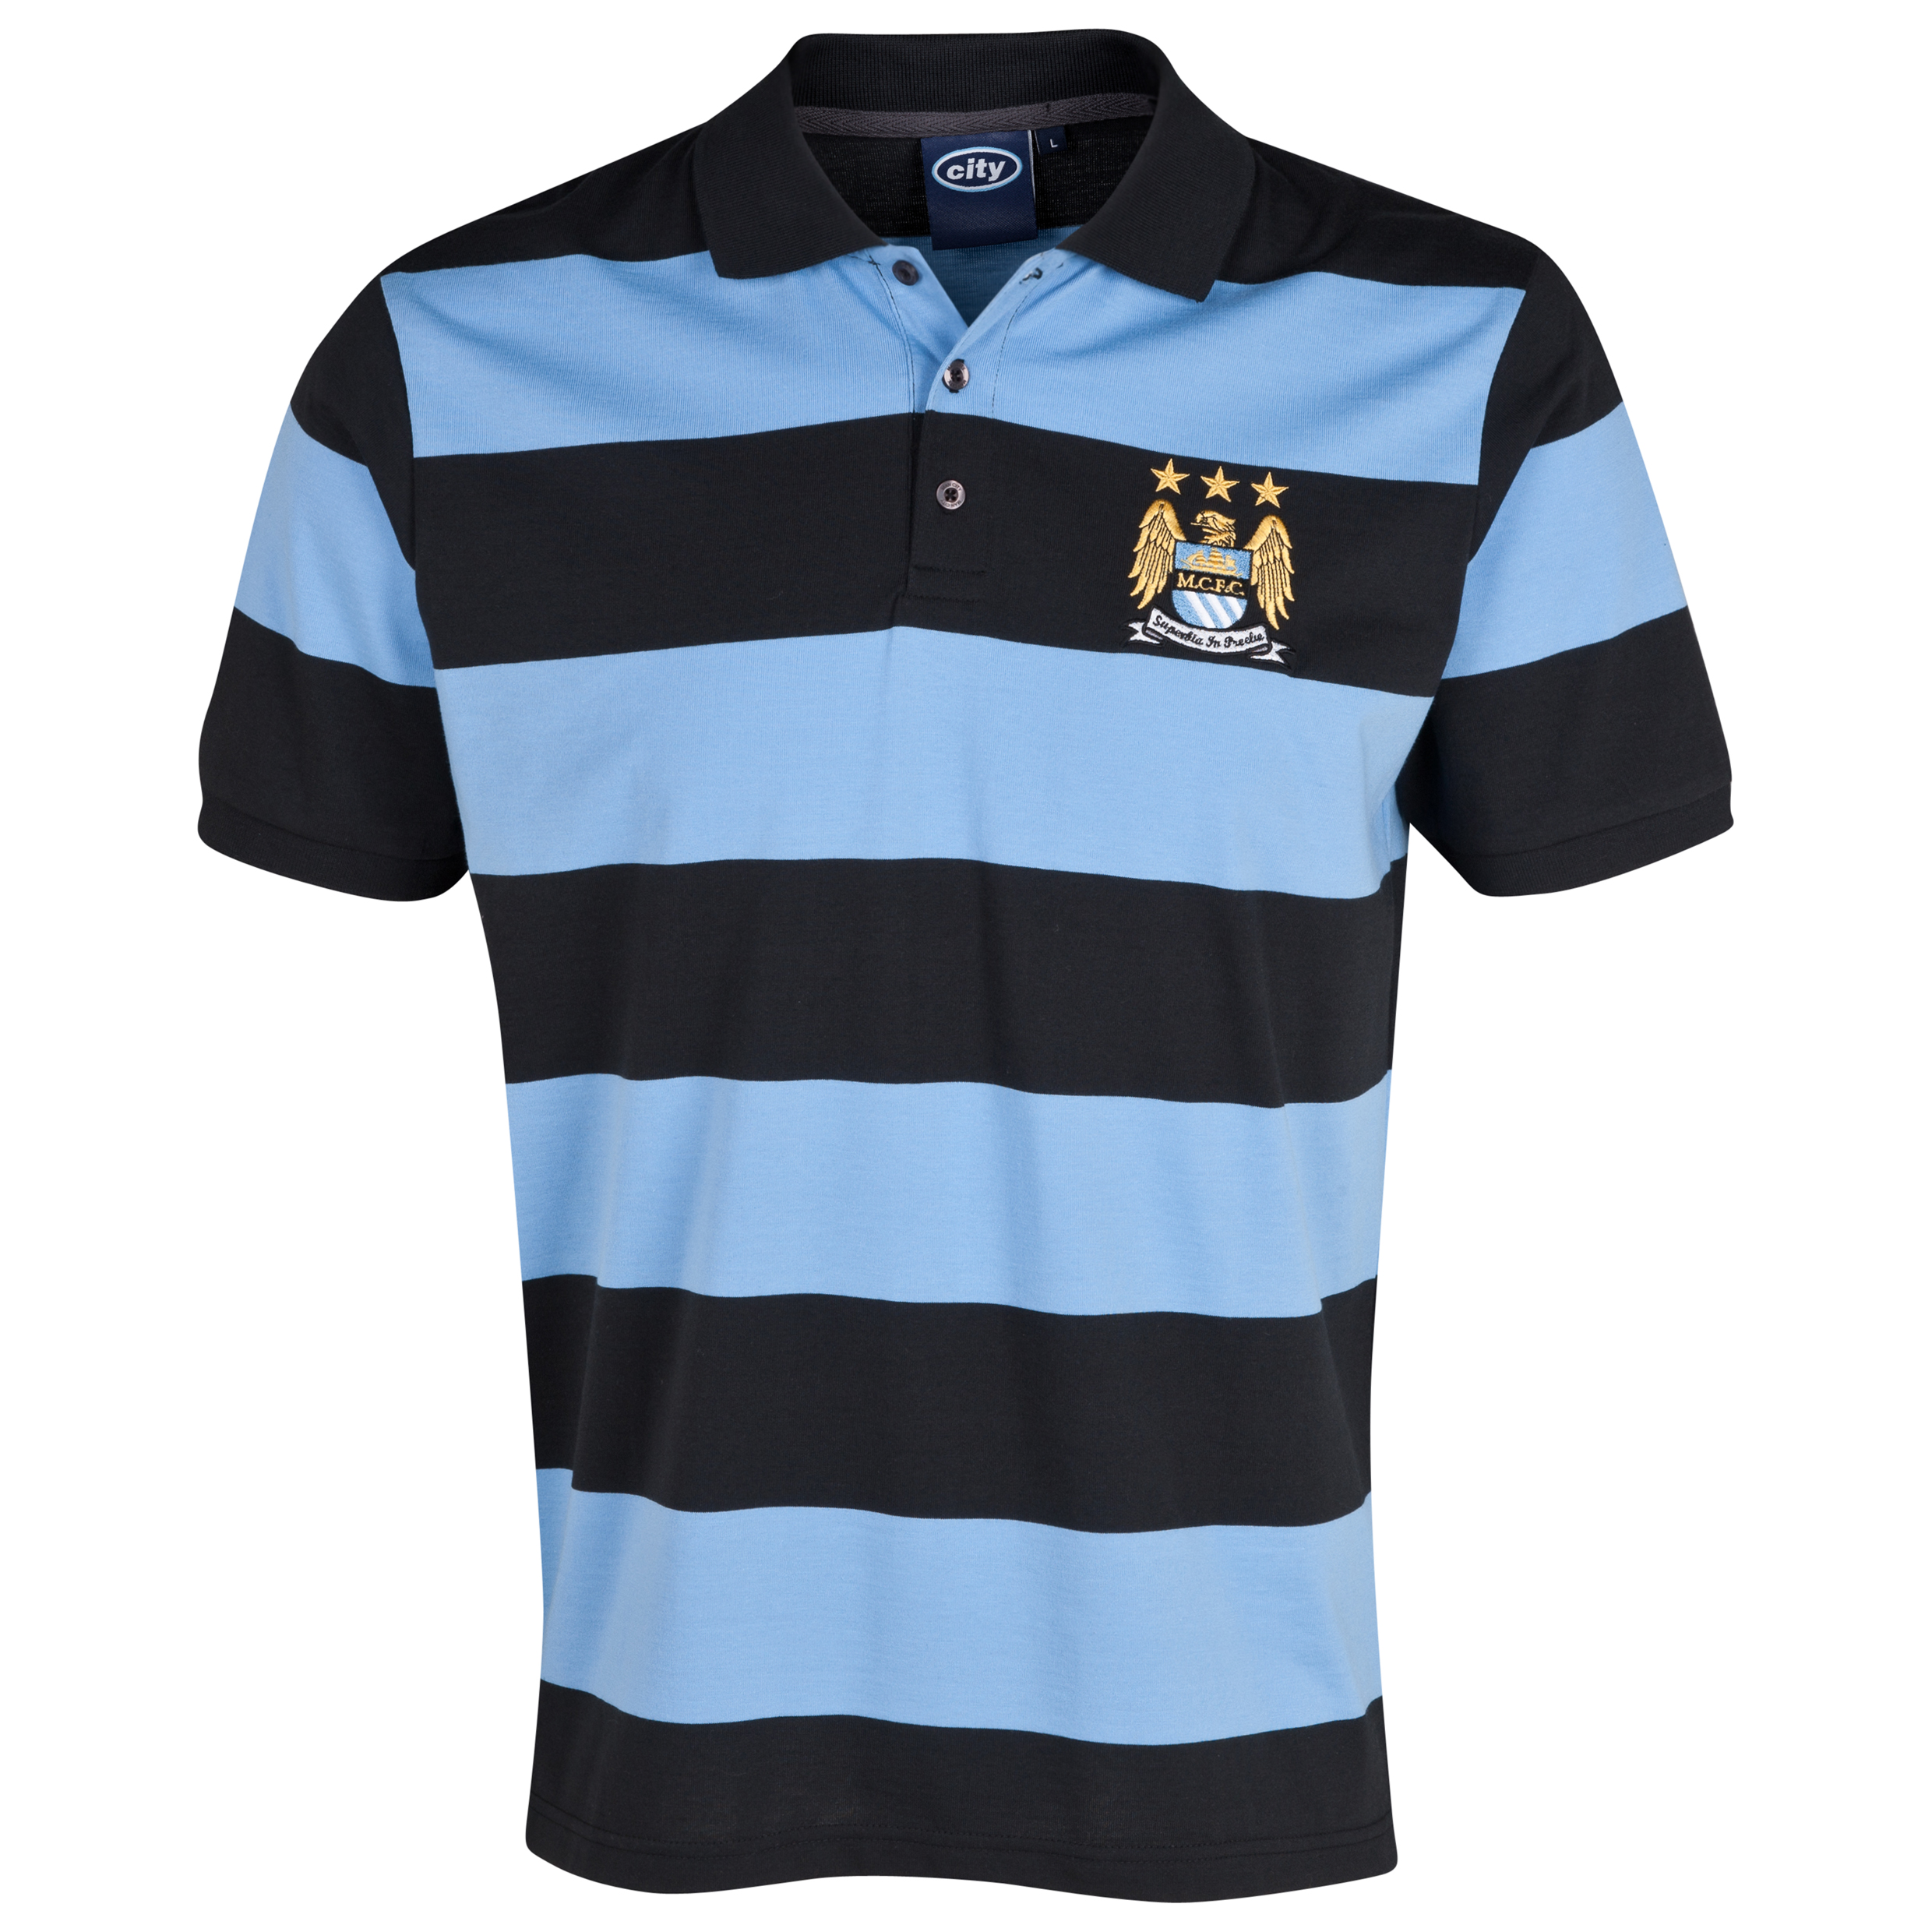 Manchester City Essentials Hooped Polo Shirt - Older Boys Lt Blue